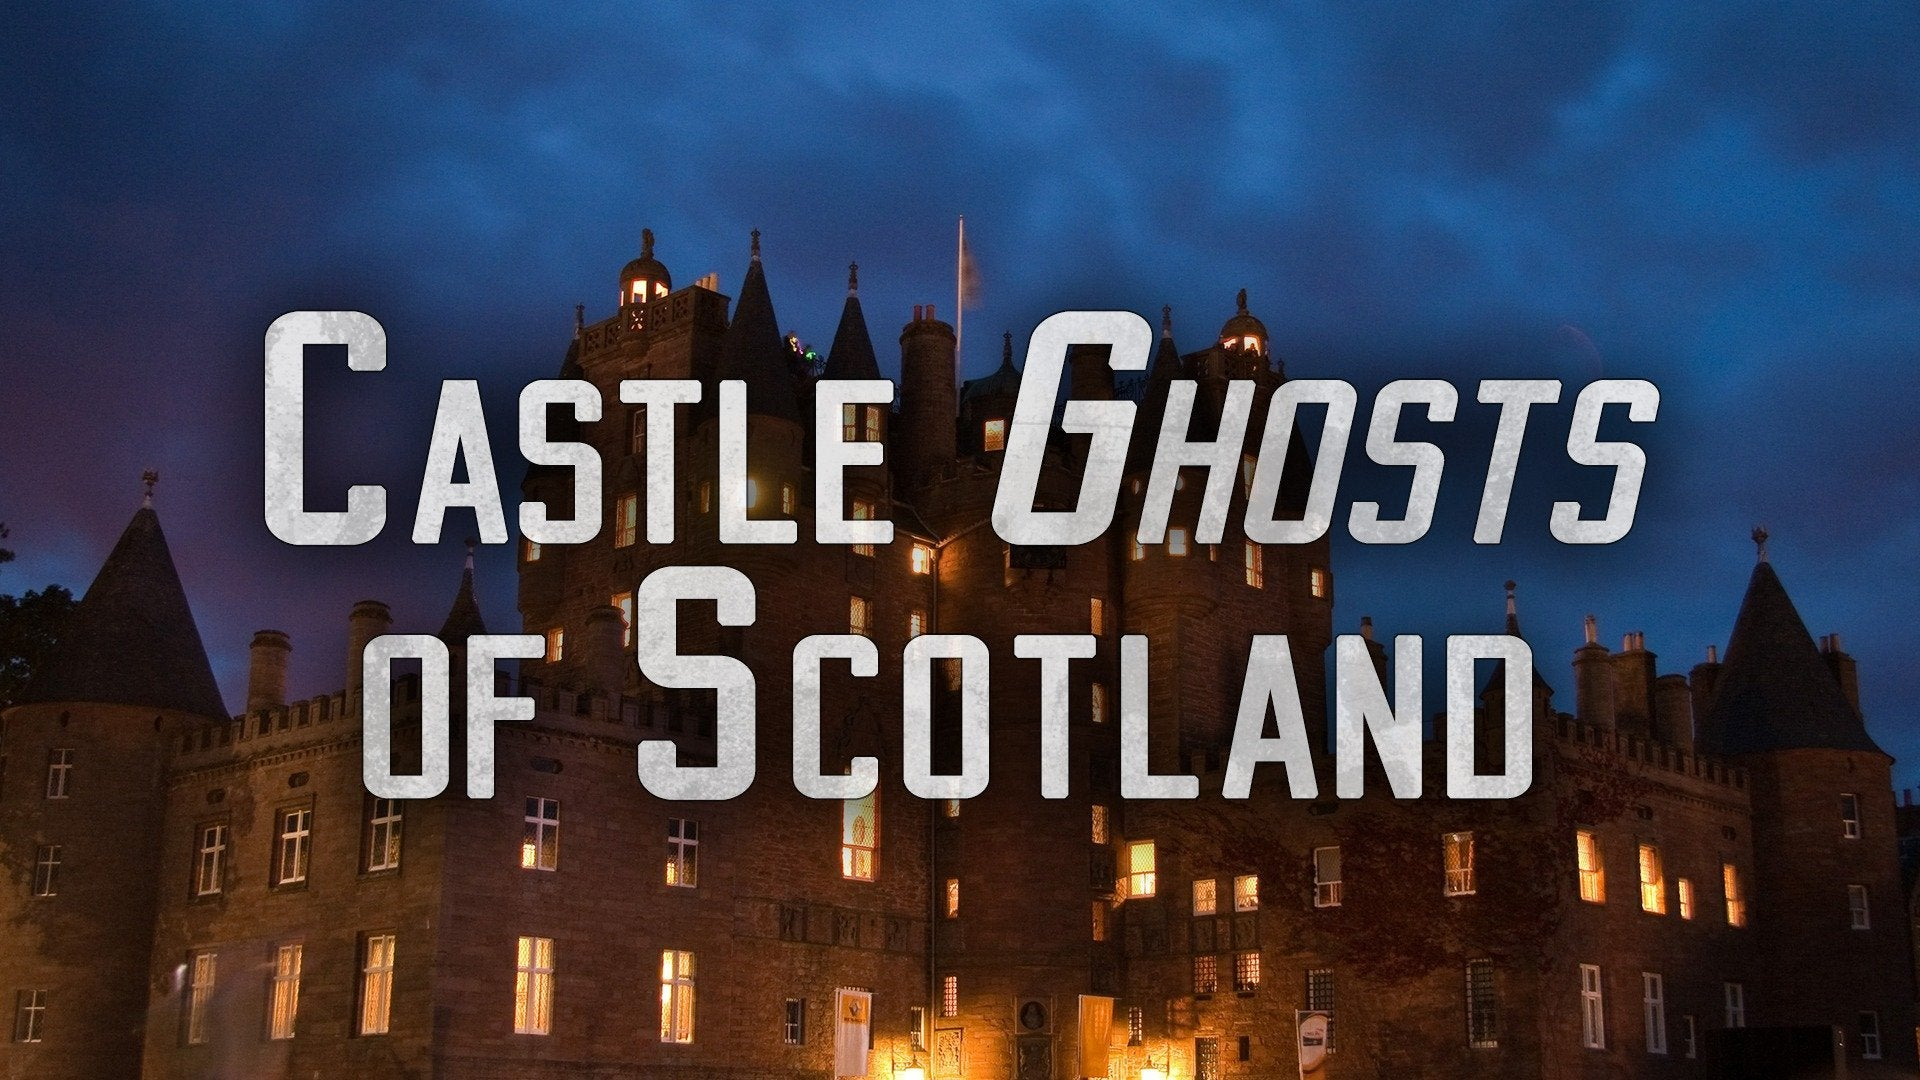 Castle Ghosts of Scotland